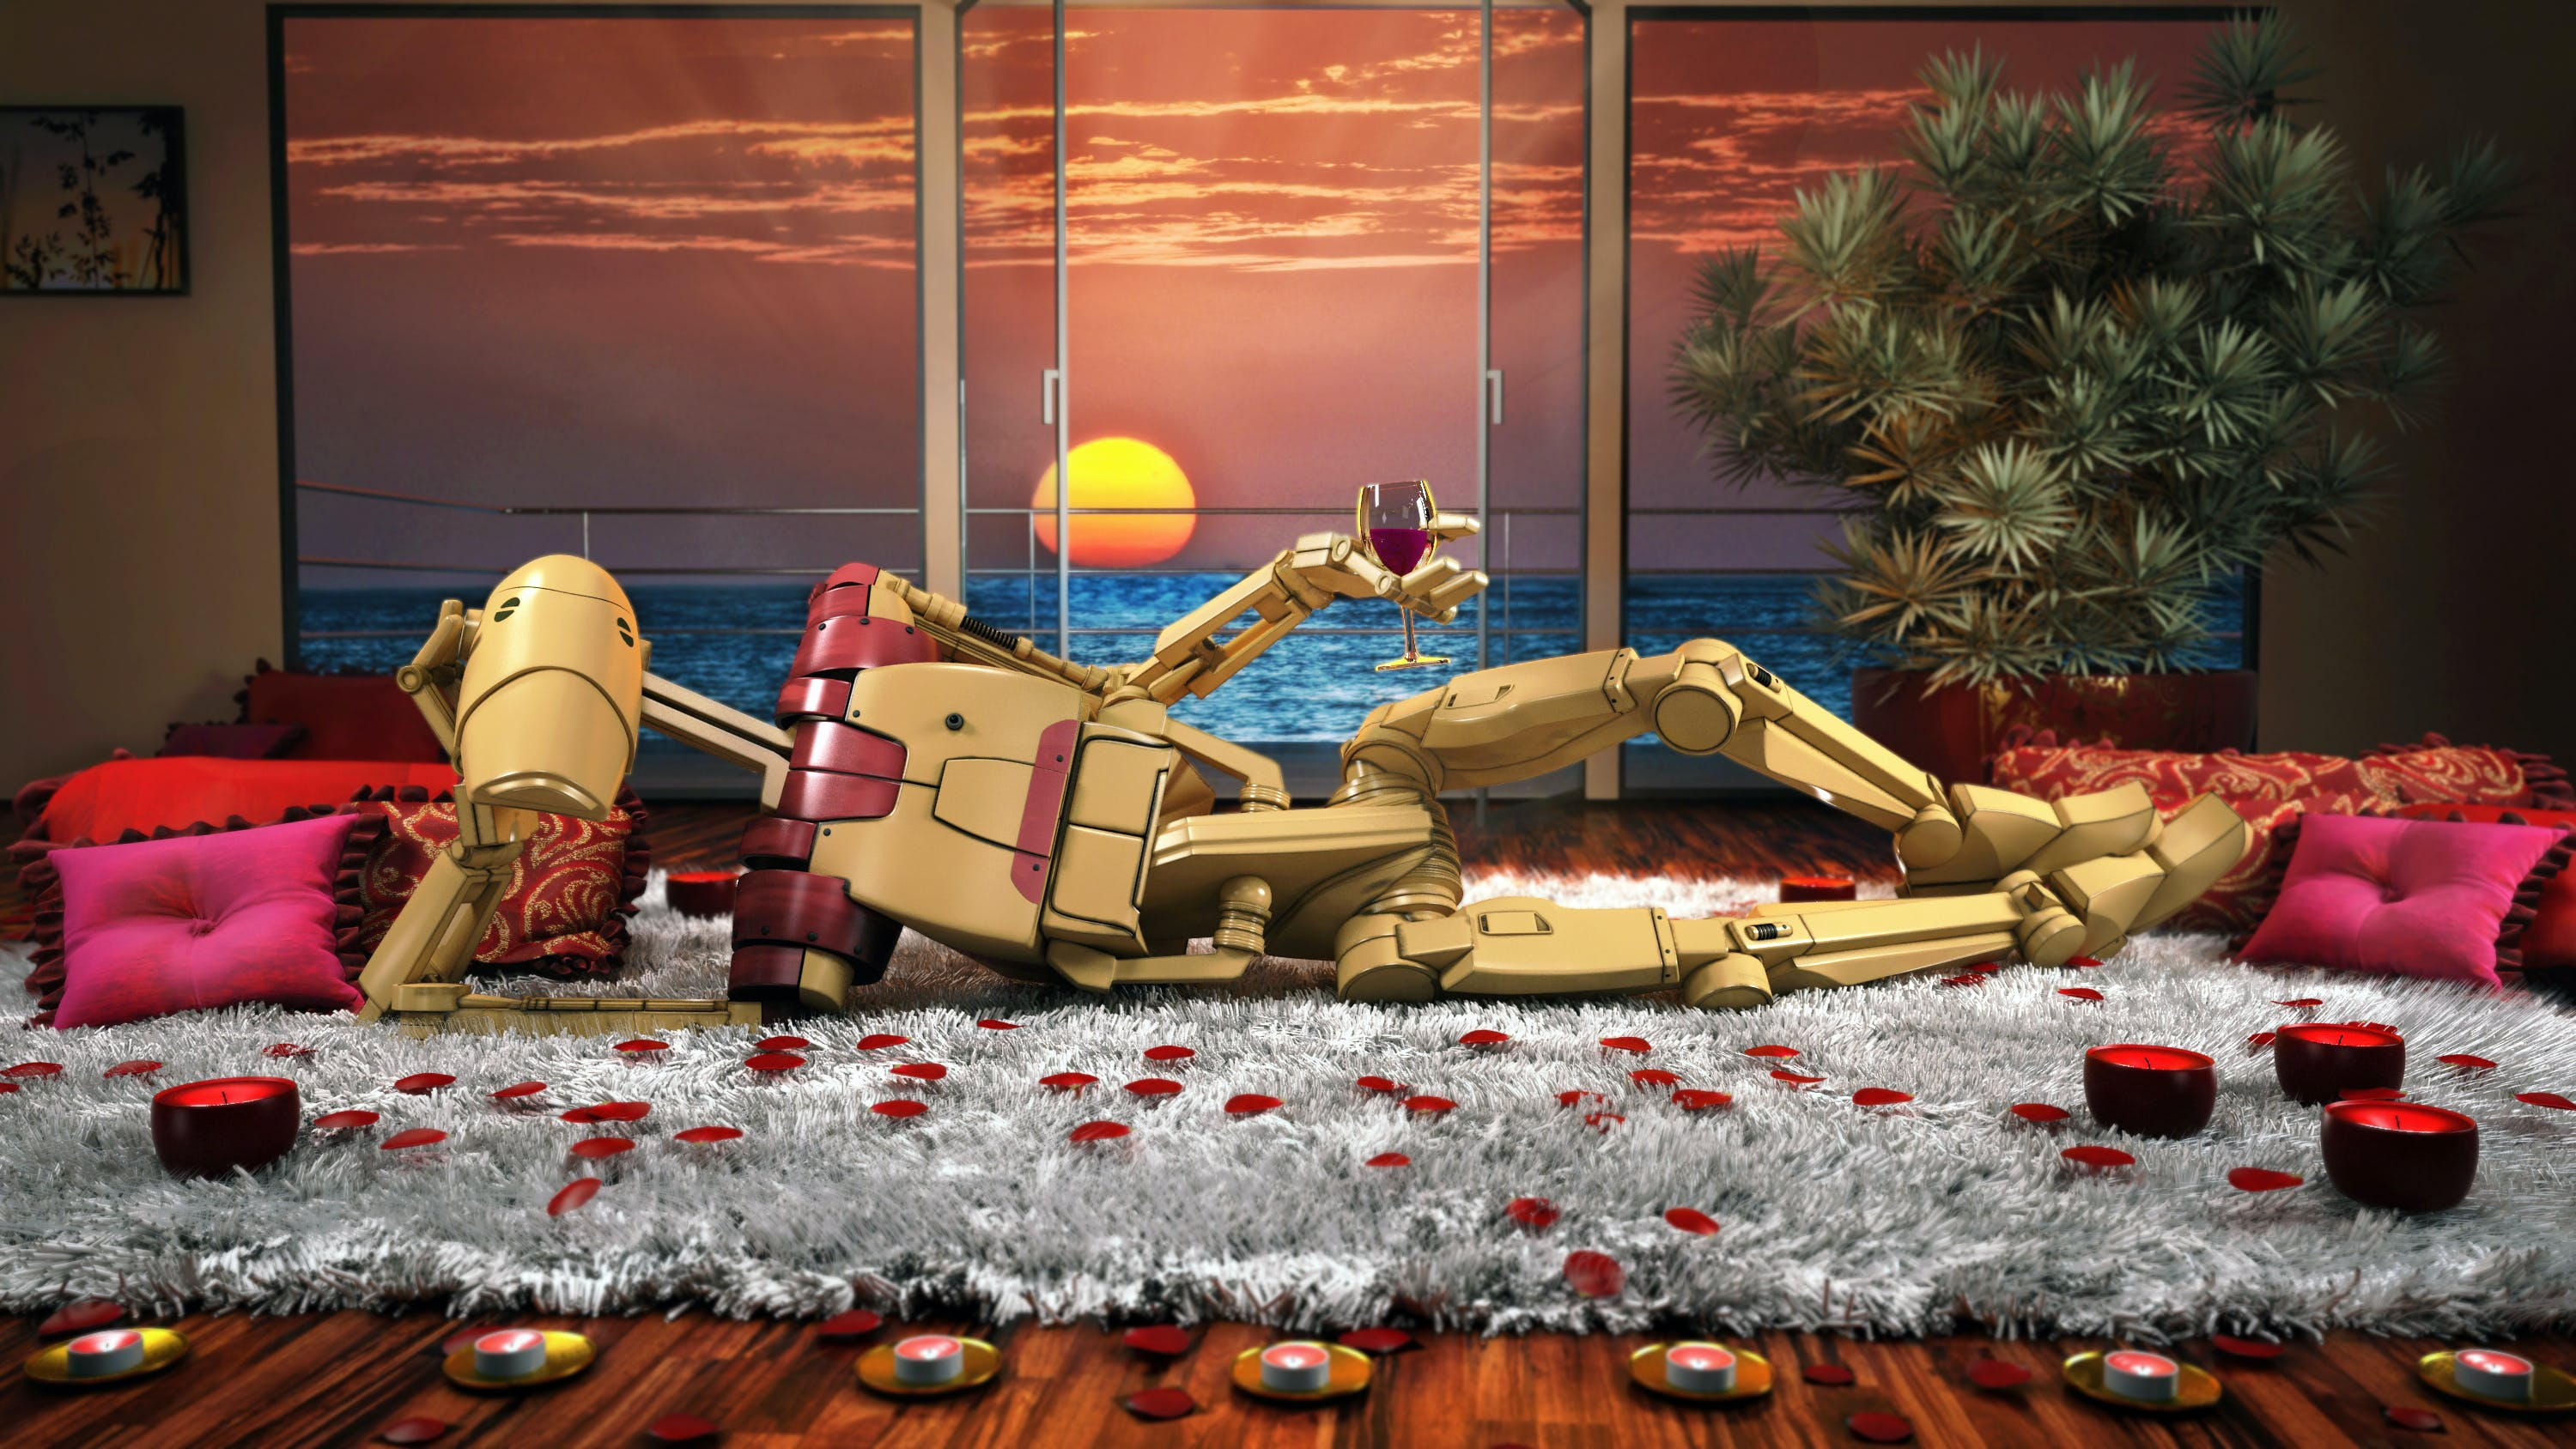 This Battledroid's Force is ready to awaken, if you get the drift.